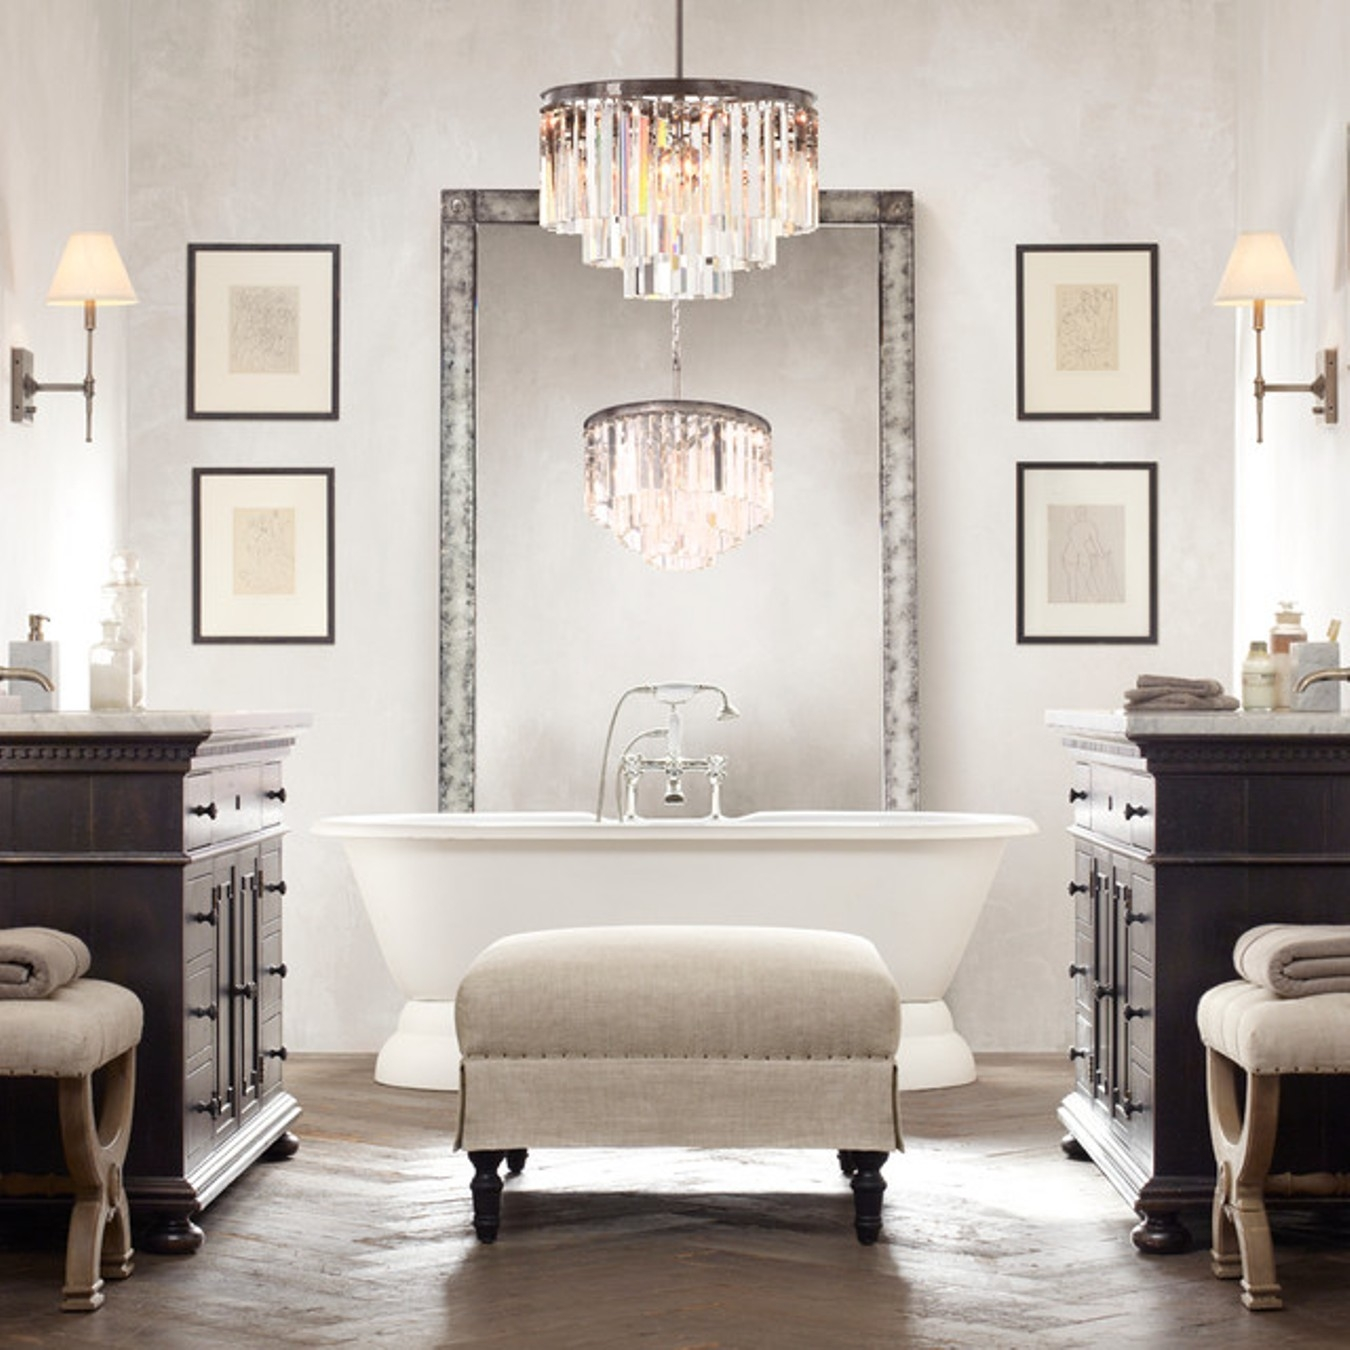 Fabulous Bathroom Chandelier Lighting Oil Rubbed Bronze Bathroom Pertaining To Chandelier Bathroom Vanity Lighting (Image 22 of 25)